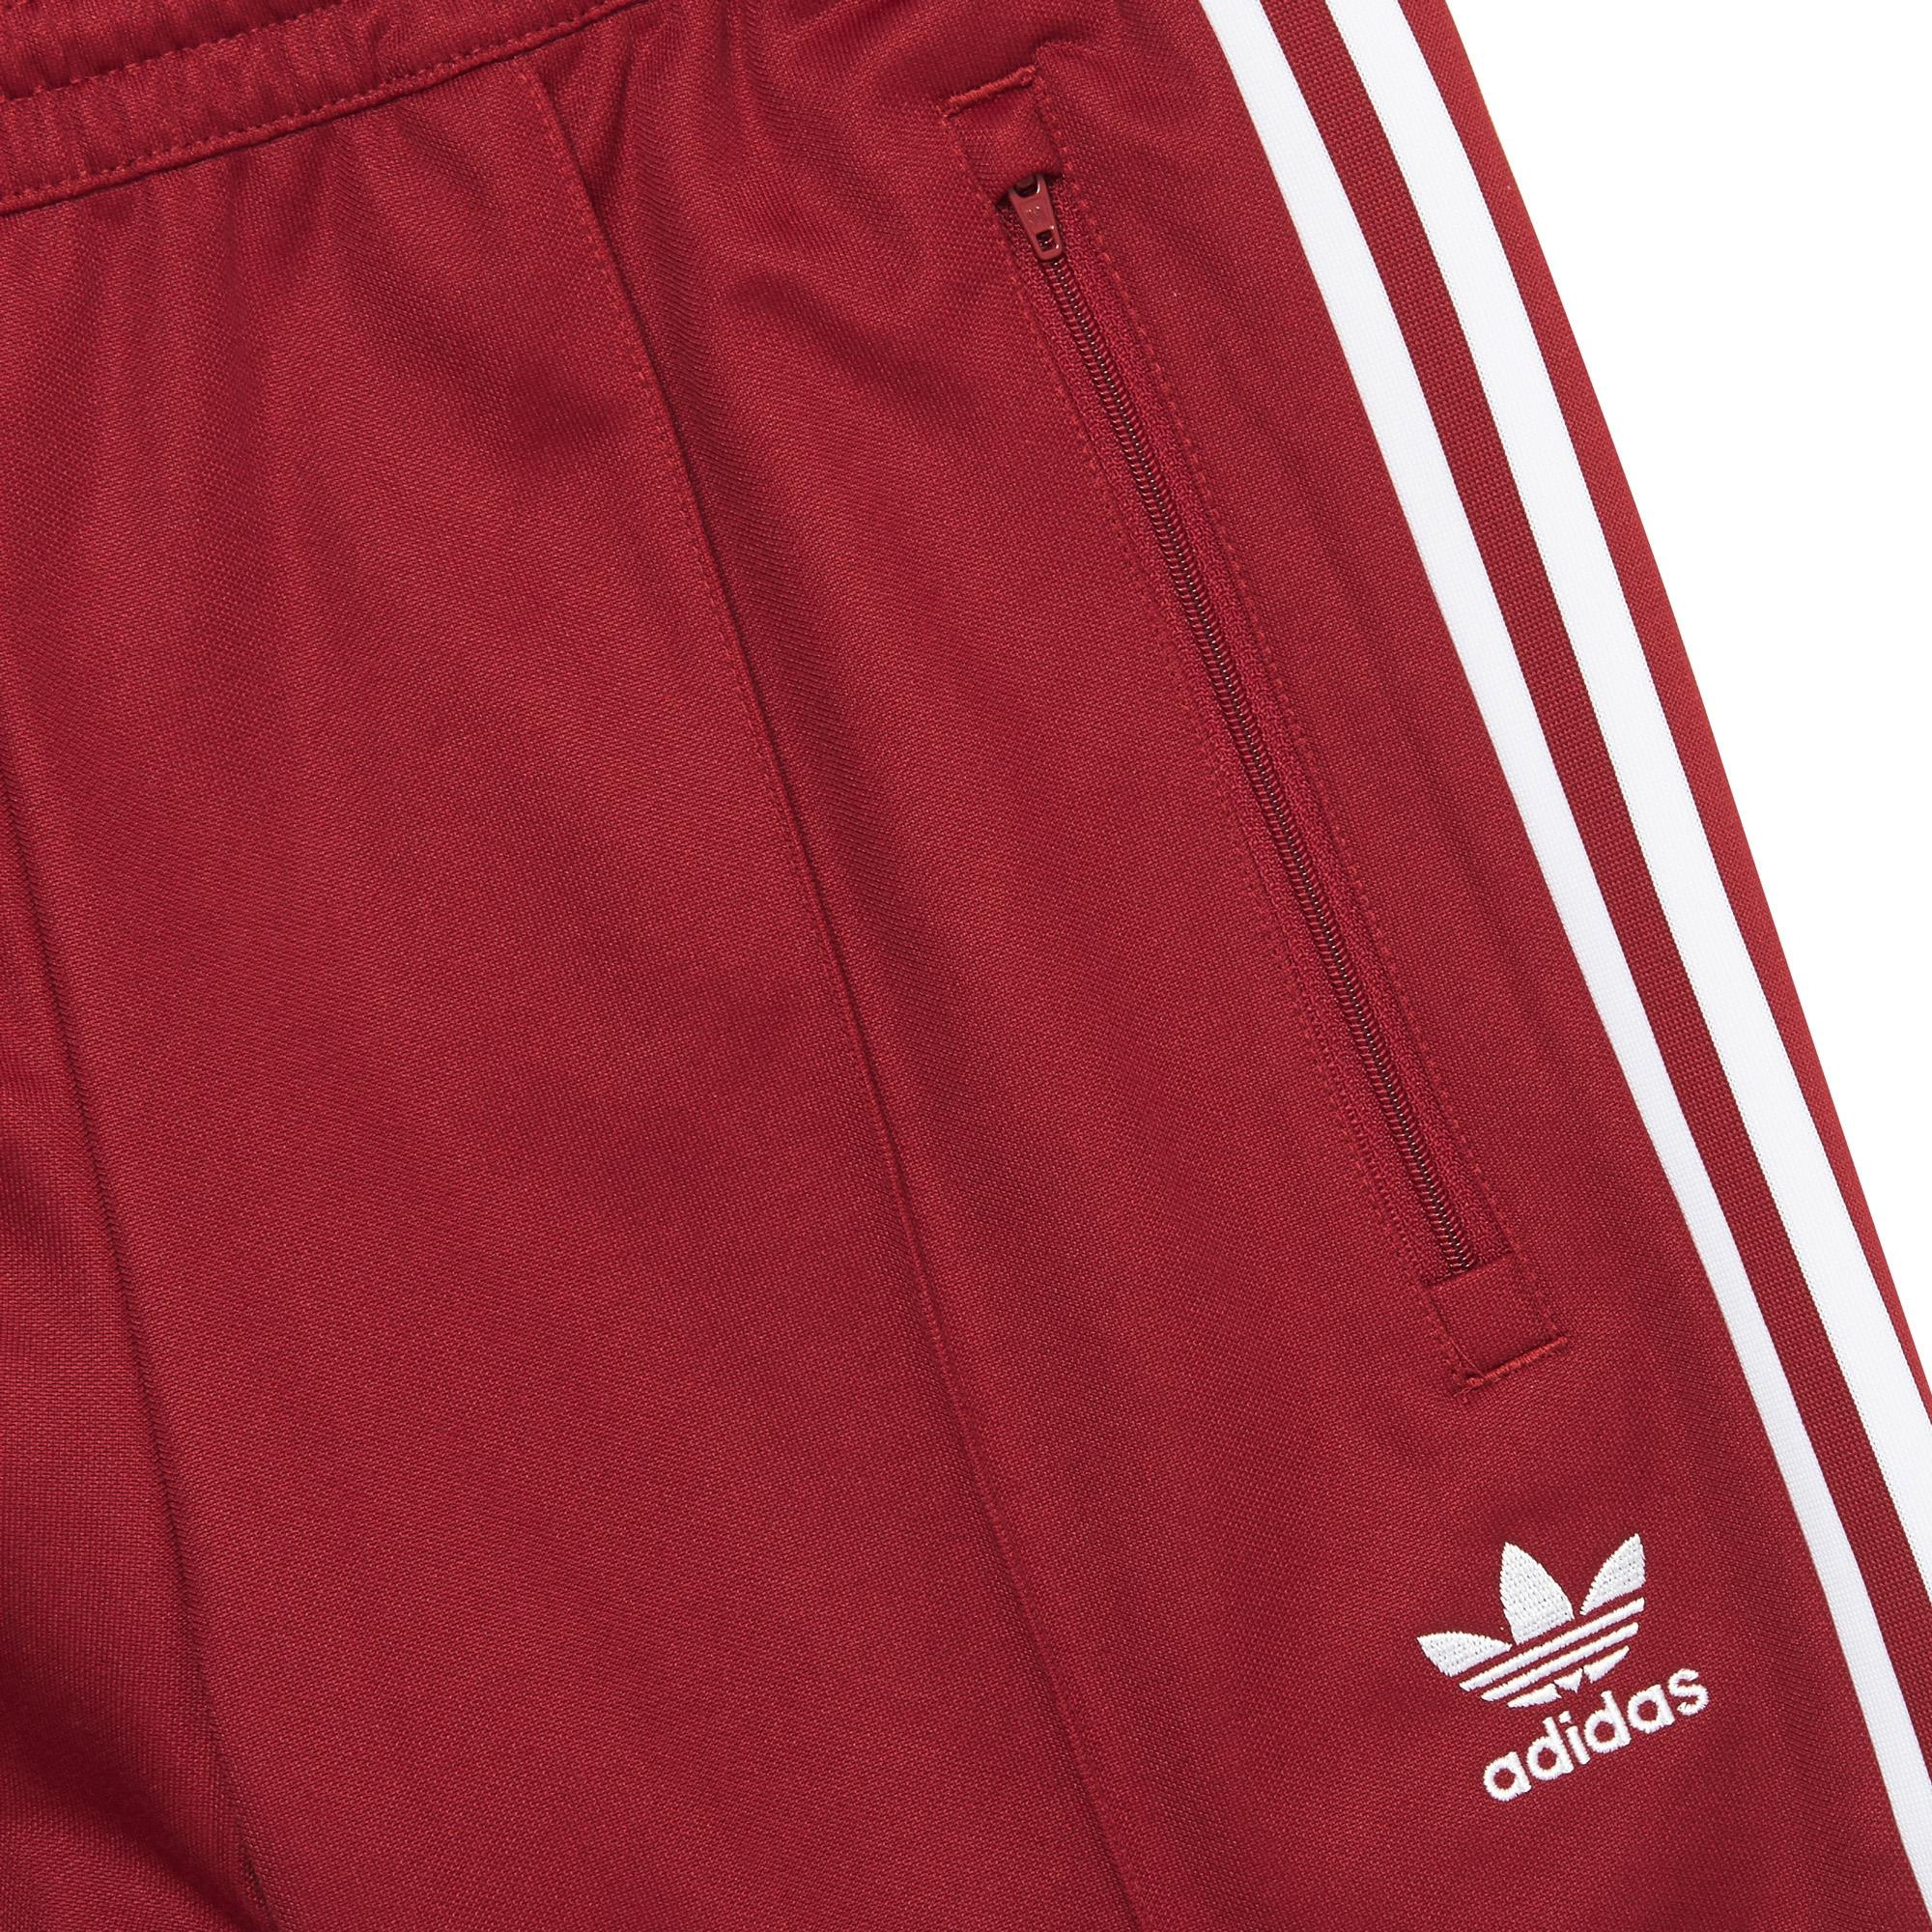 e8301d0f0c6b Lyst - adidas Originals Red Rust Beckenbauer Track Pant in Red for Men